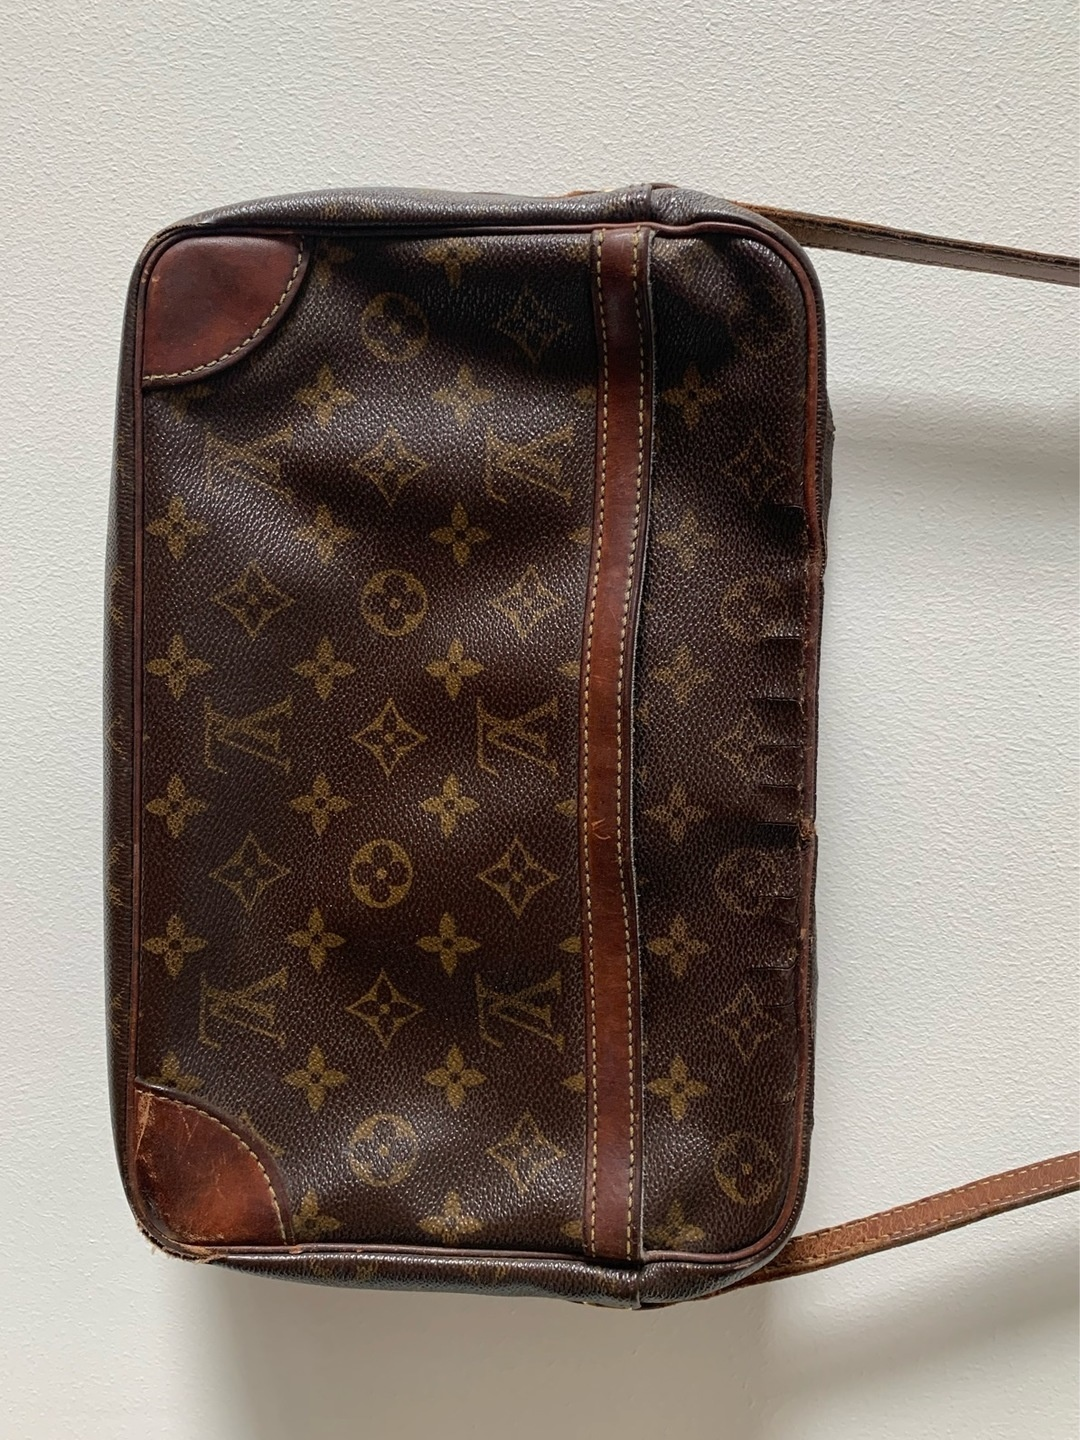 Damen taschen & geldbörsen - LOUIS VUITTON photo 2